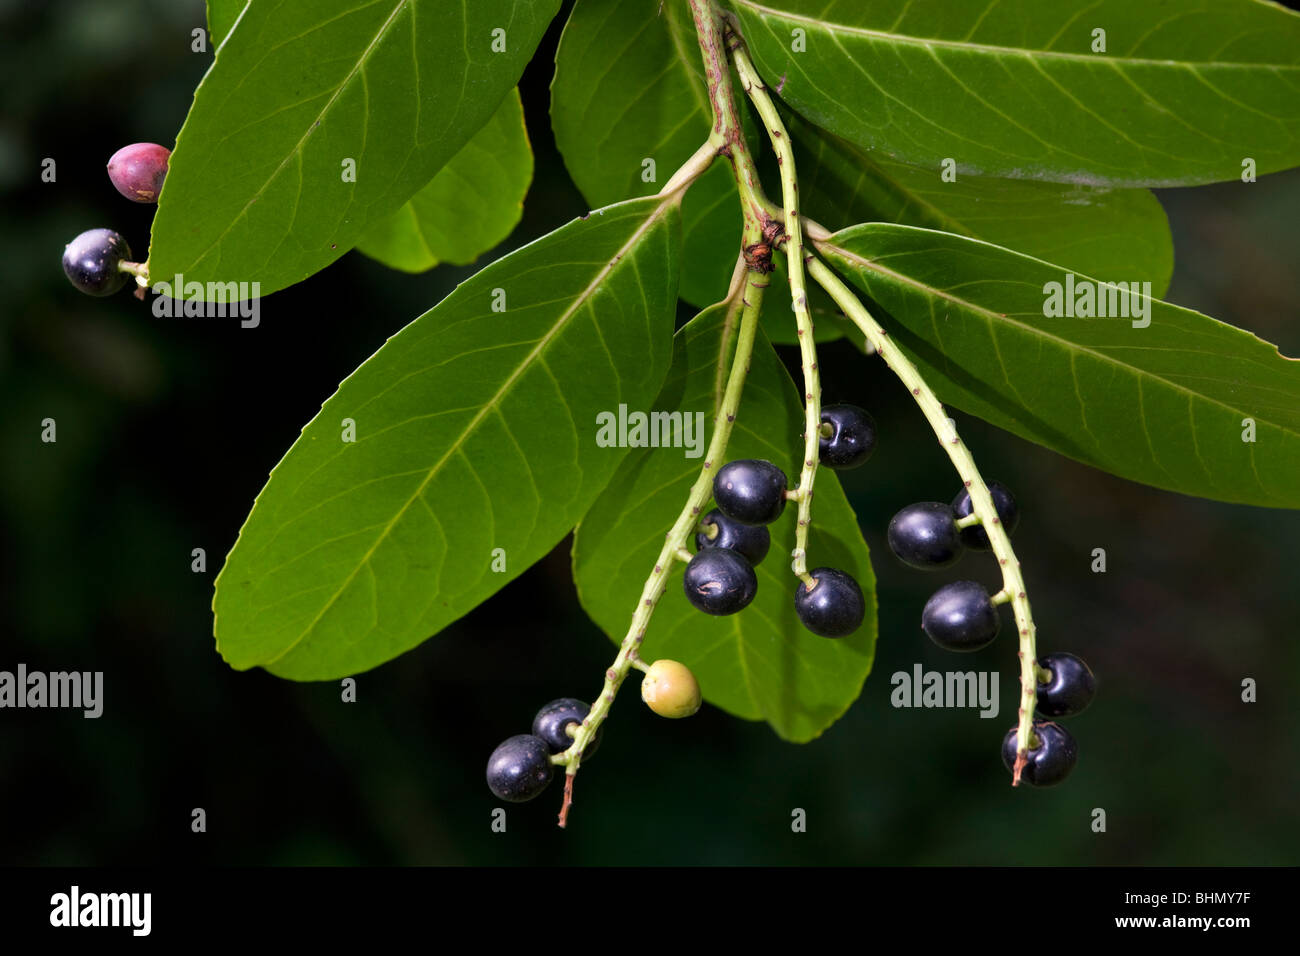 Cherry laurel / English laurel (Prunus laurocerasus) showing leaves and black berries, Belgium - Stock Image